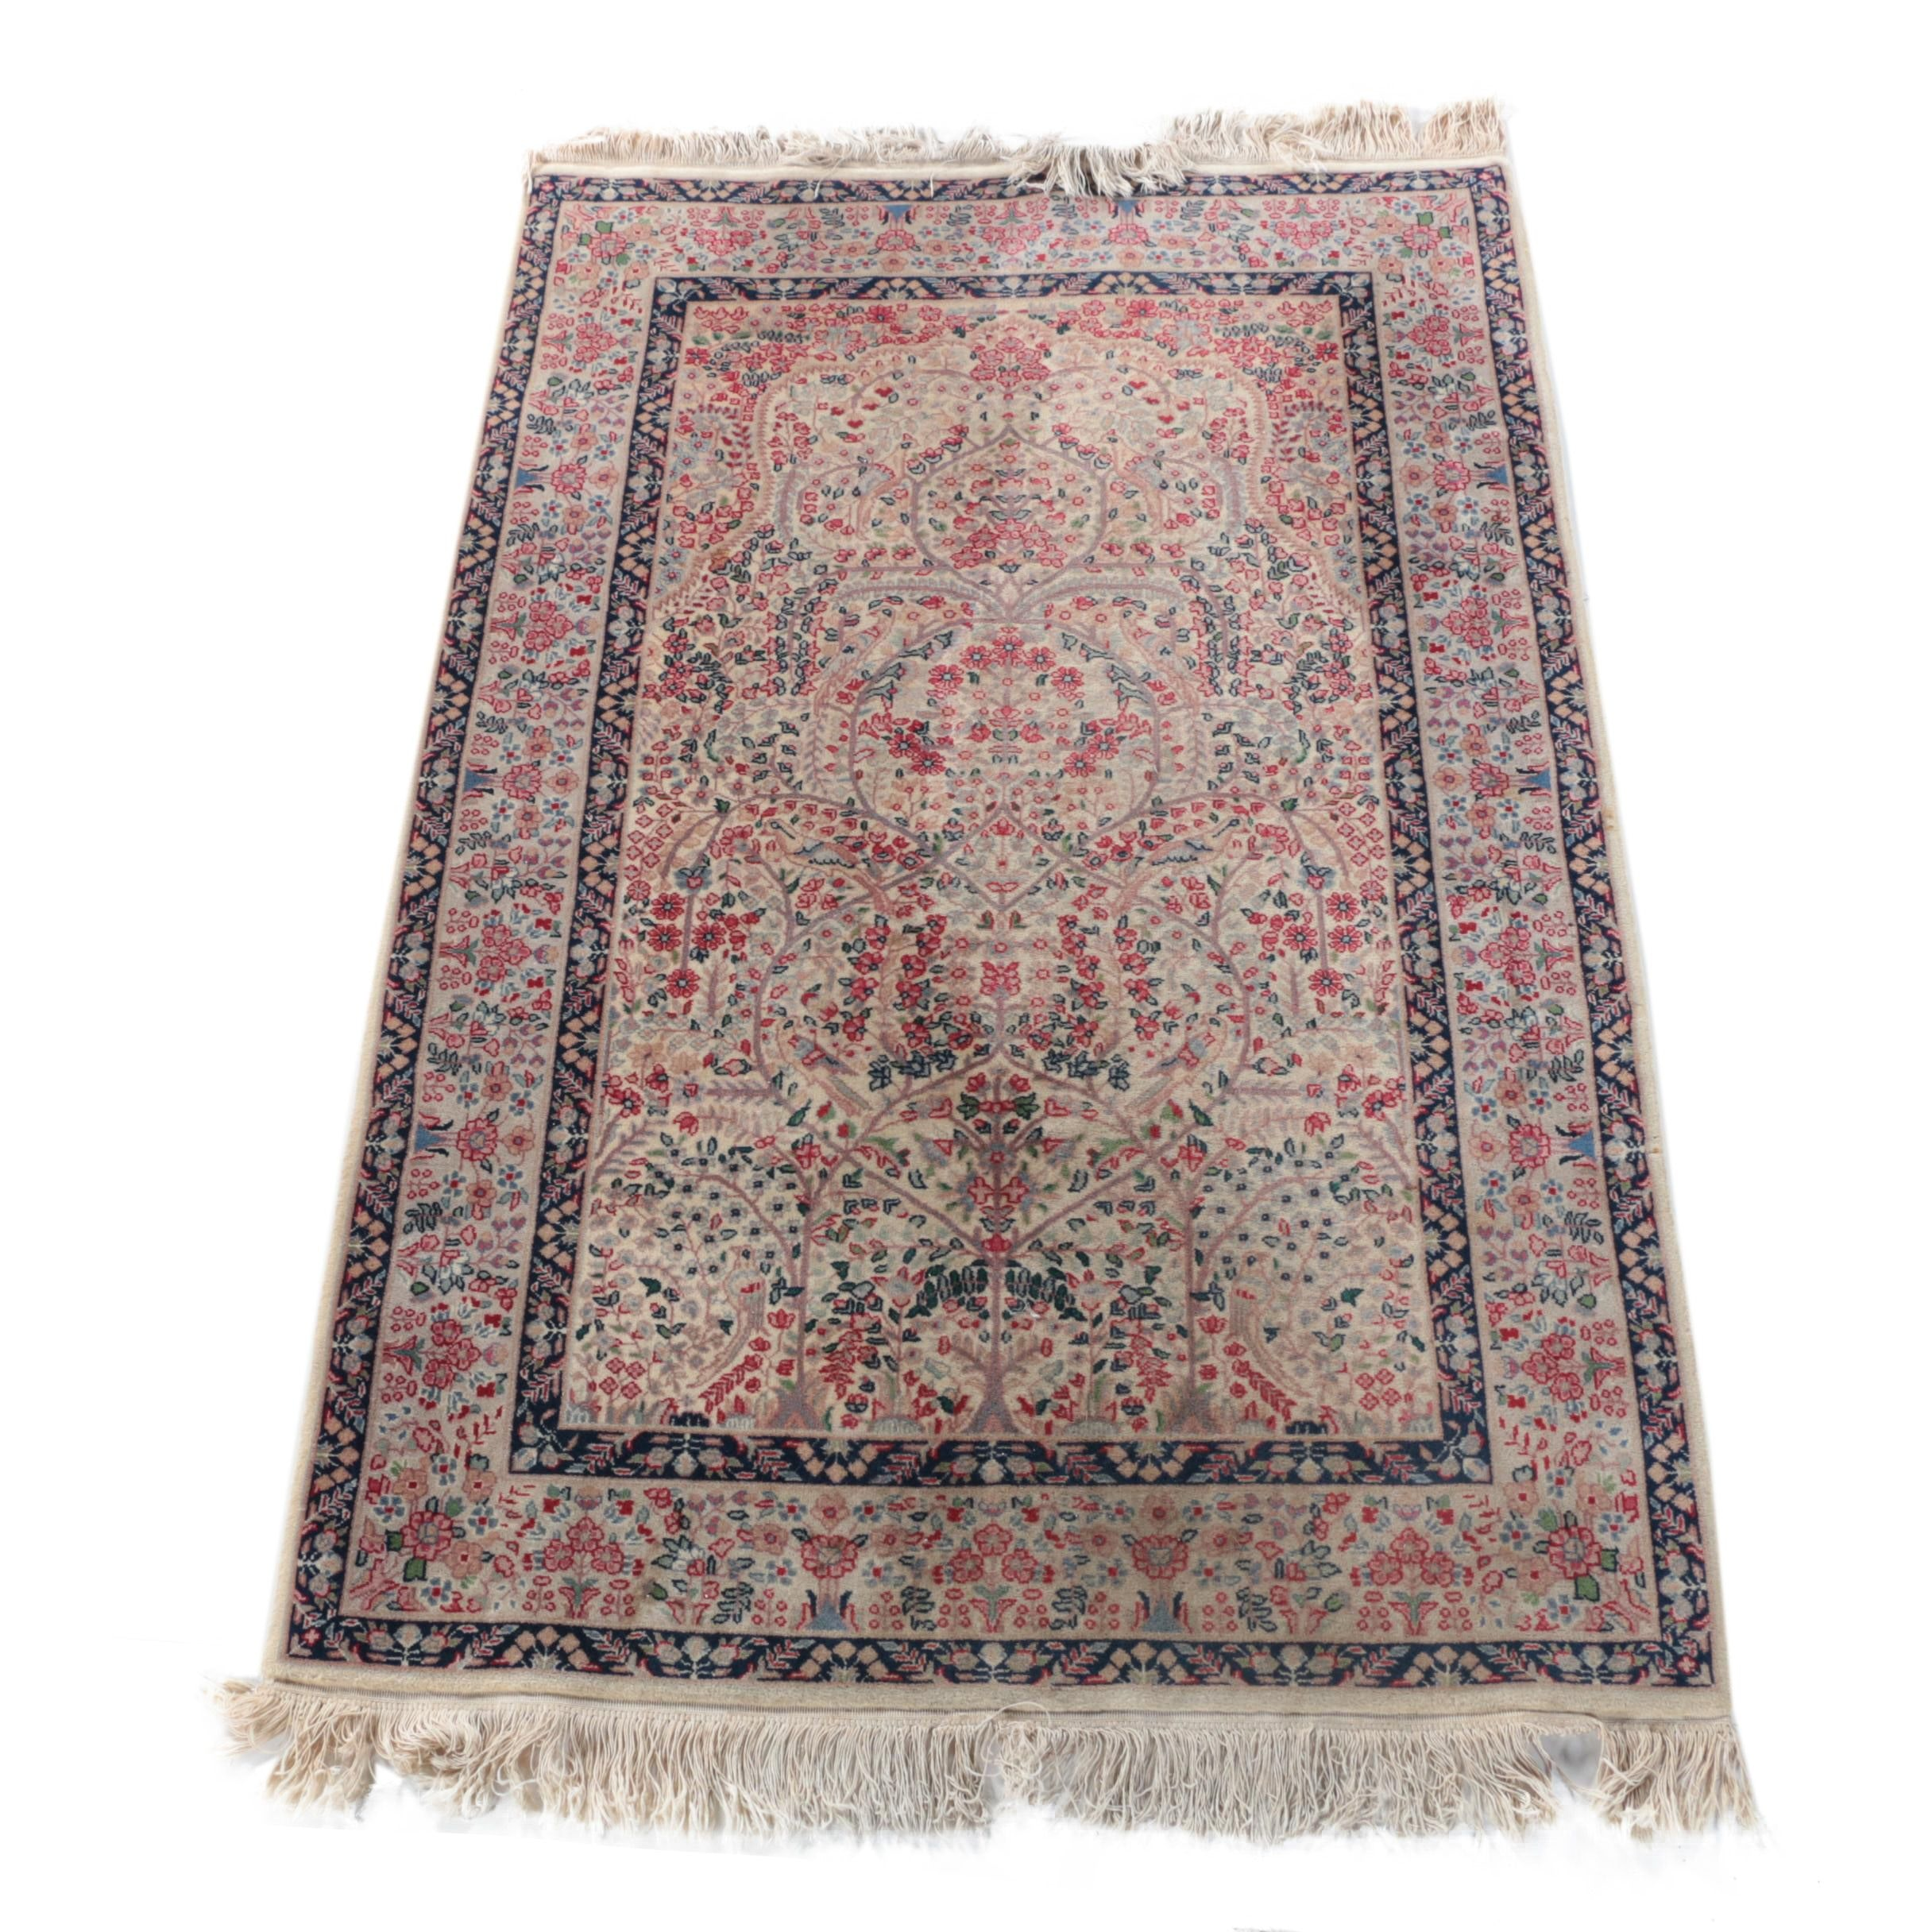 Vintage Finely Hand-Knotted Sino-Persian Wool Prayer Rug